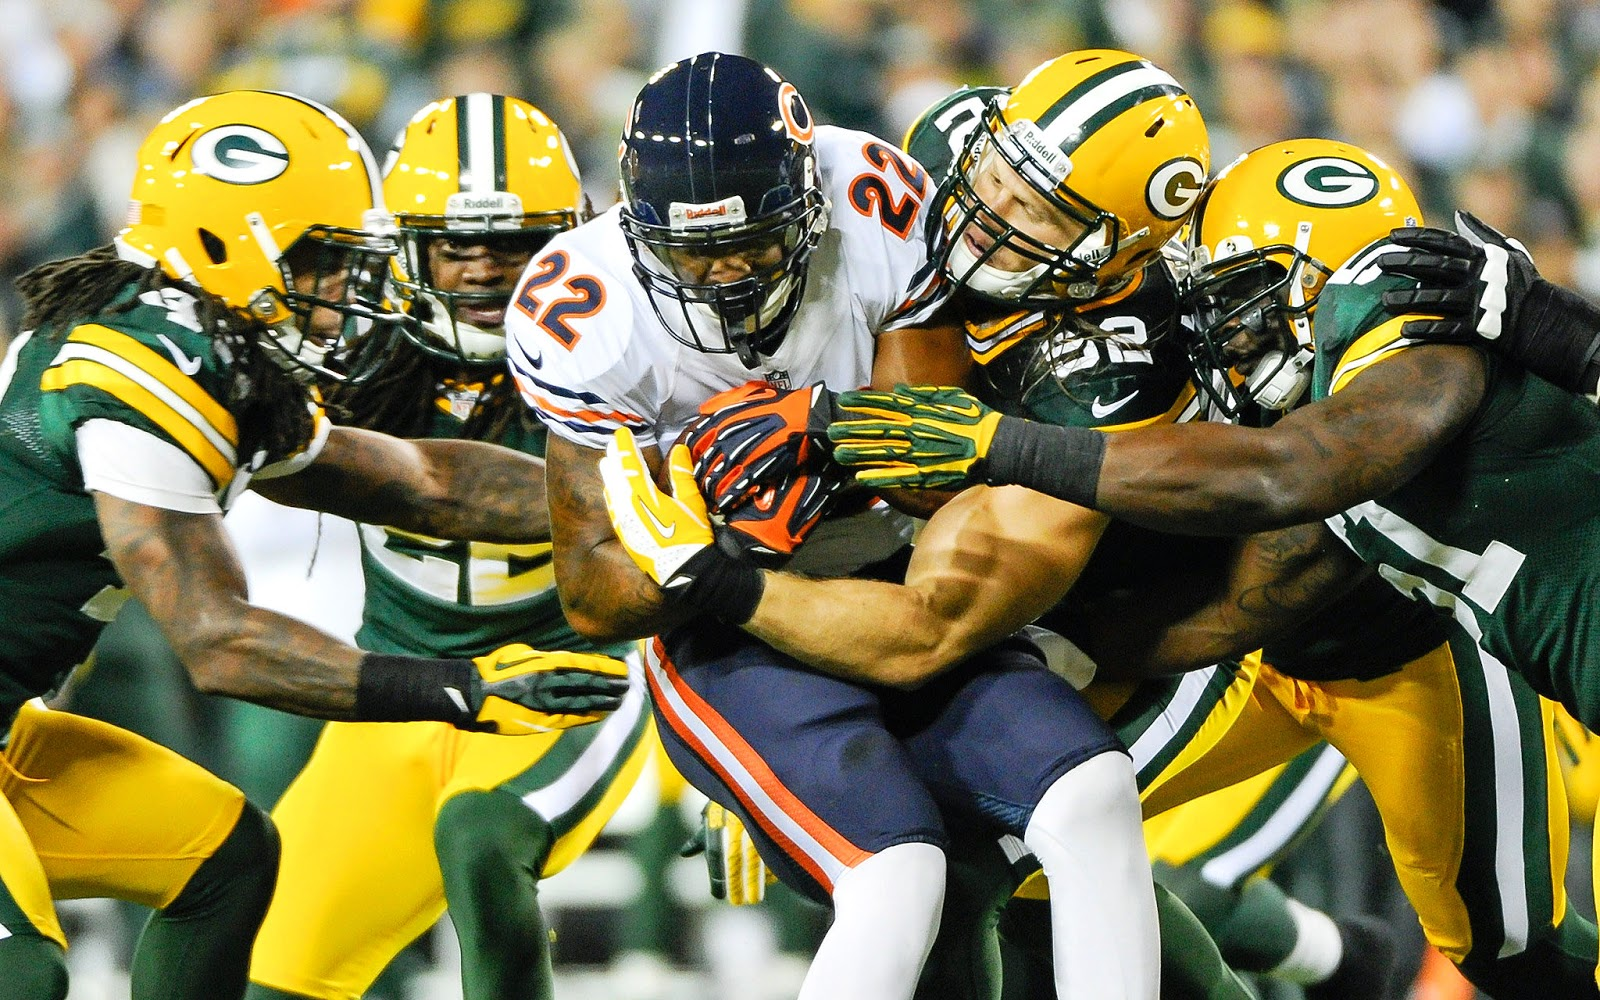 nfc north preview team by team breakdown predictions and other shenanigans